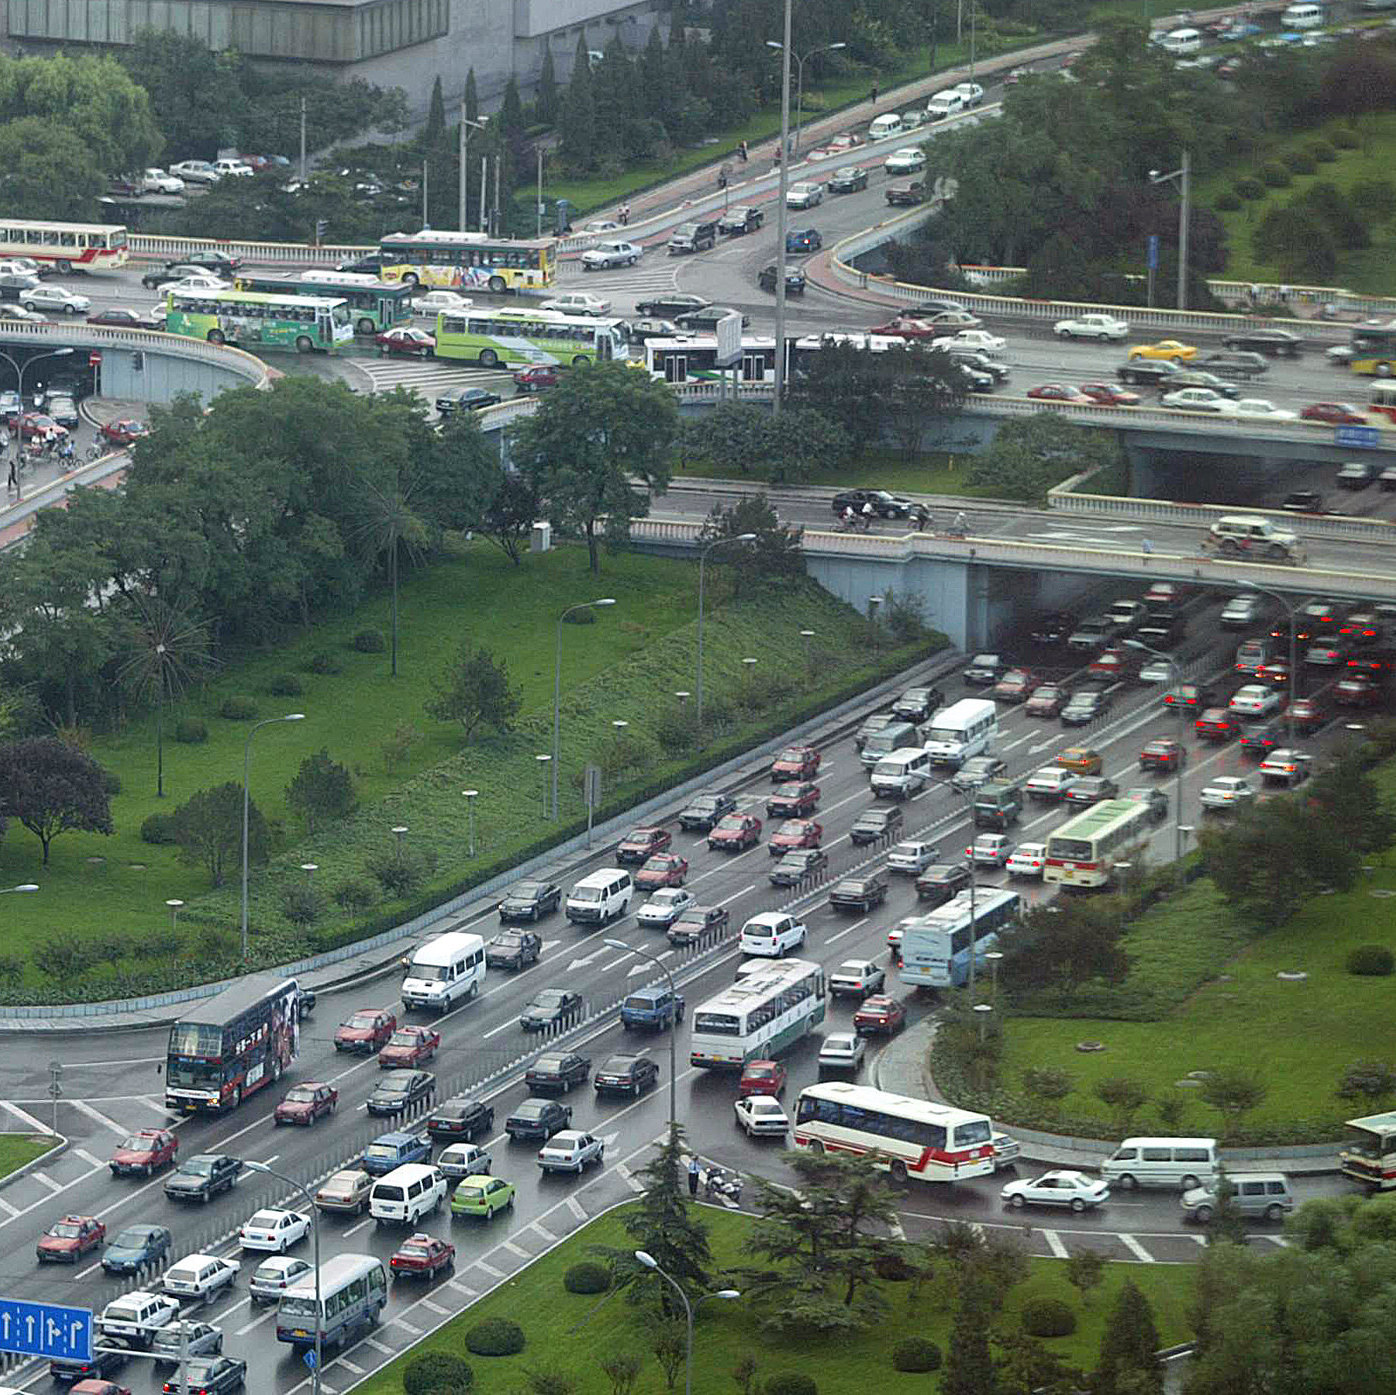 Looks like fun, right? This is just another day on Beijing roads, and what you can expect if you're able to pass the Chinese driver's test.